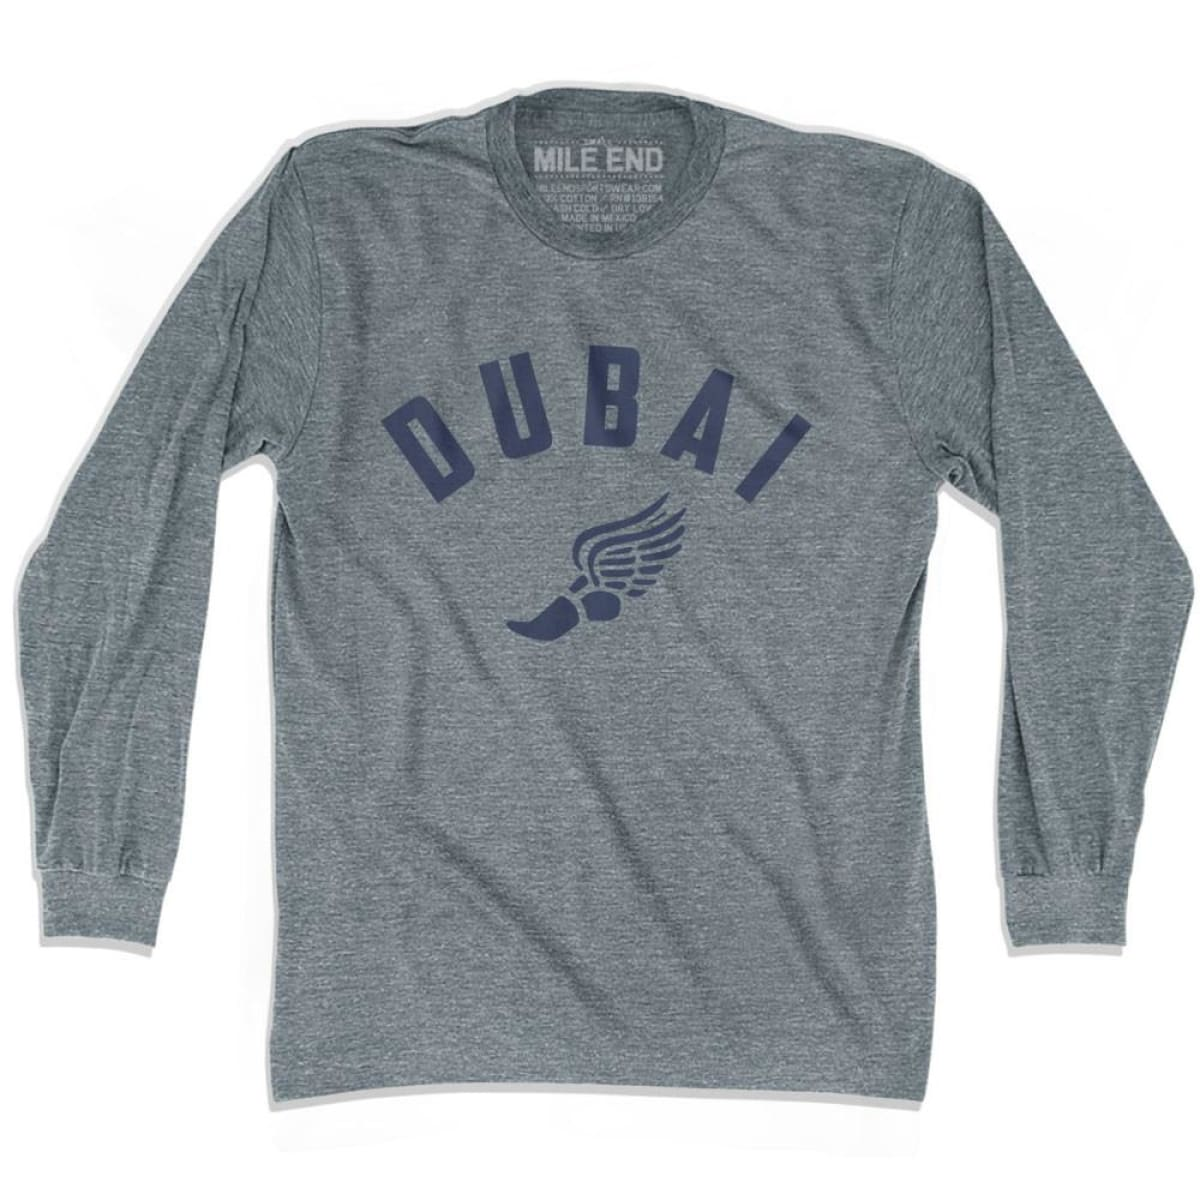 Dubai Track Long Sleeve T-shirt - Athletic Grey / Adult X-Small - Mile End Track